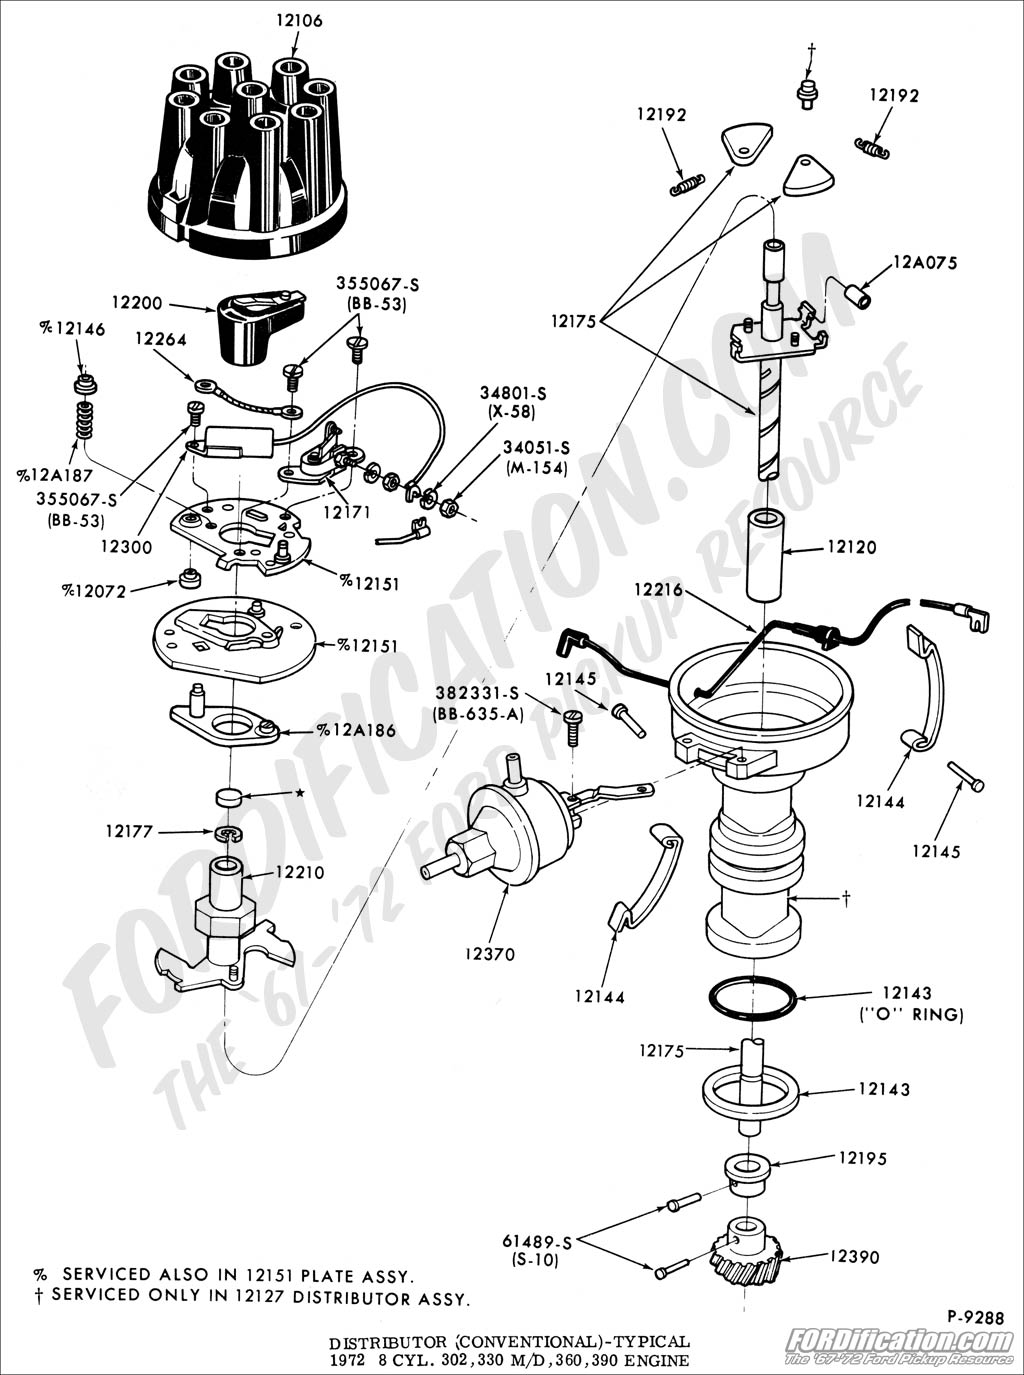 2012 Taotao 49cc Scooter Wiring Diagram in addition Basic 12 Volt Wiring Diagrams additionally Razor Dune Buggy Wiring Diagram additionally Activa Transporter Mobility Scooter Wiring Diagram also Harley Wiring Diagram For Dummies 2004 Sportster 1200. on razor electric scooter schematics